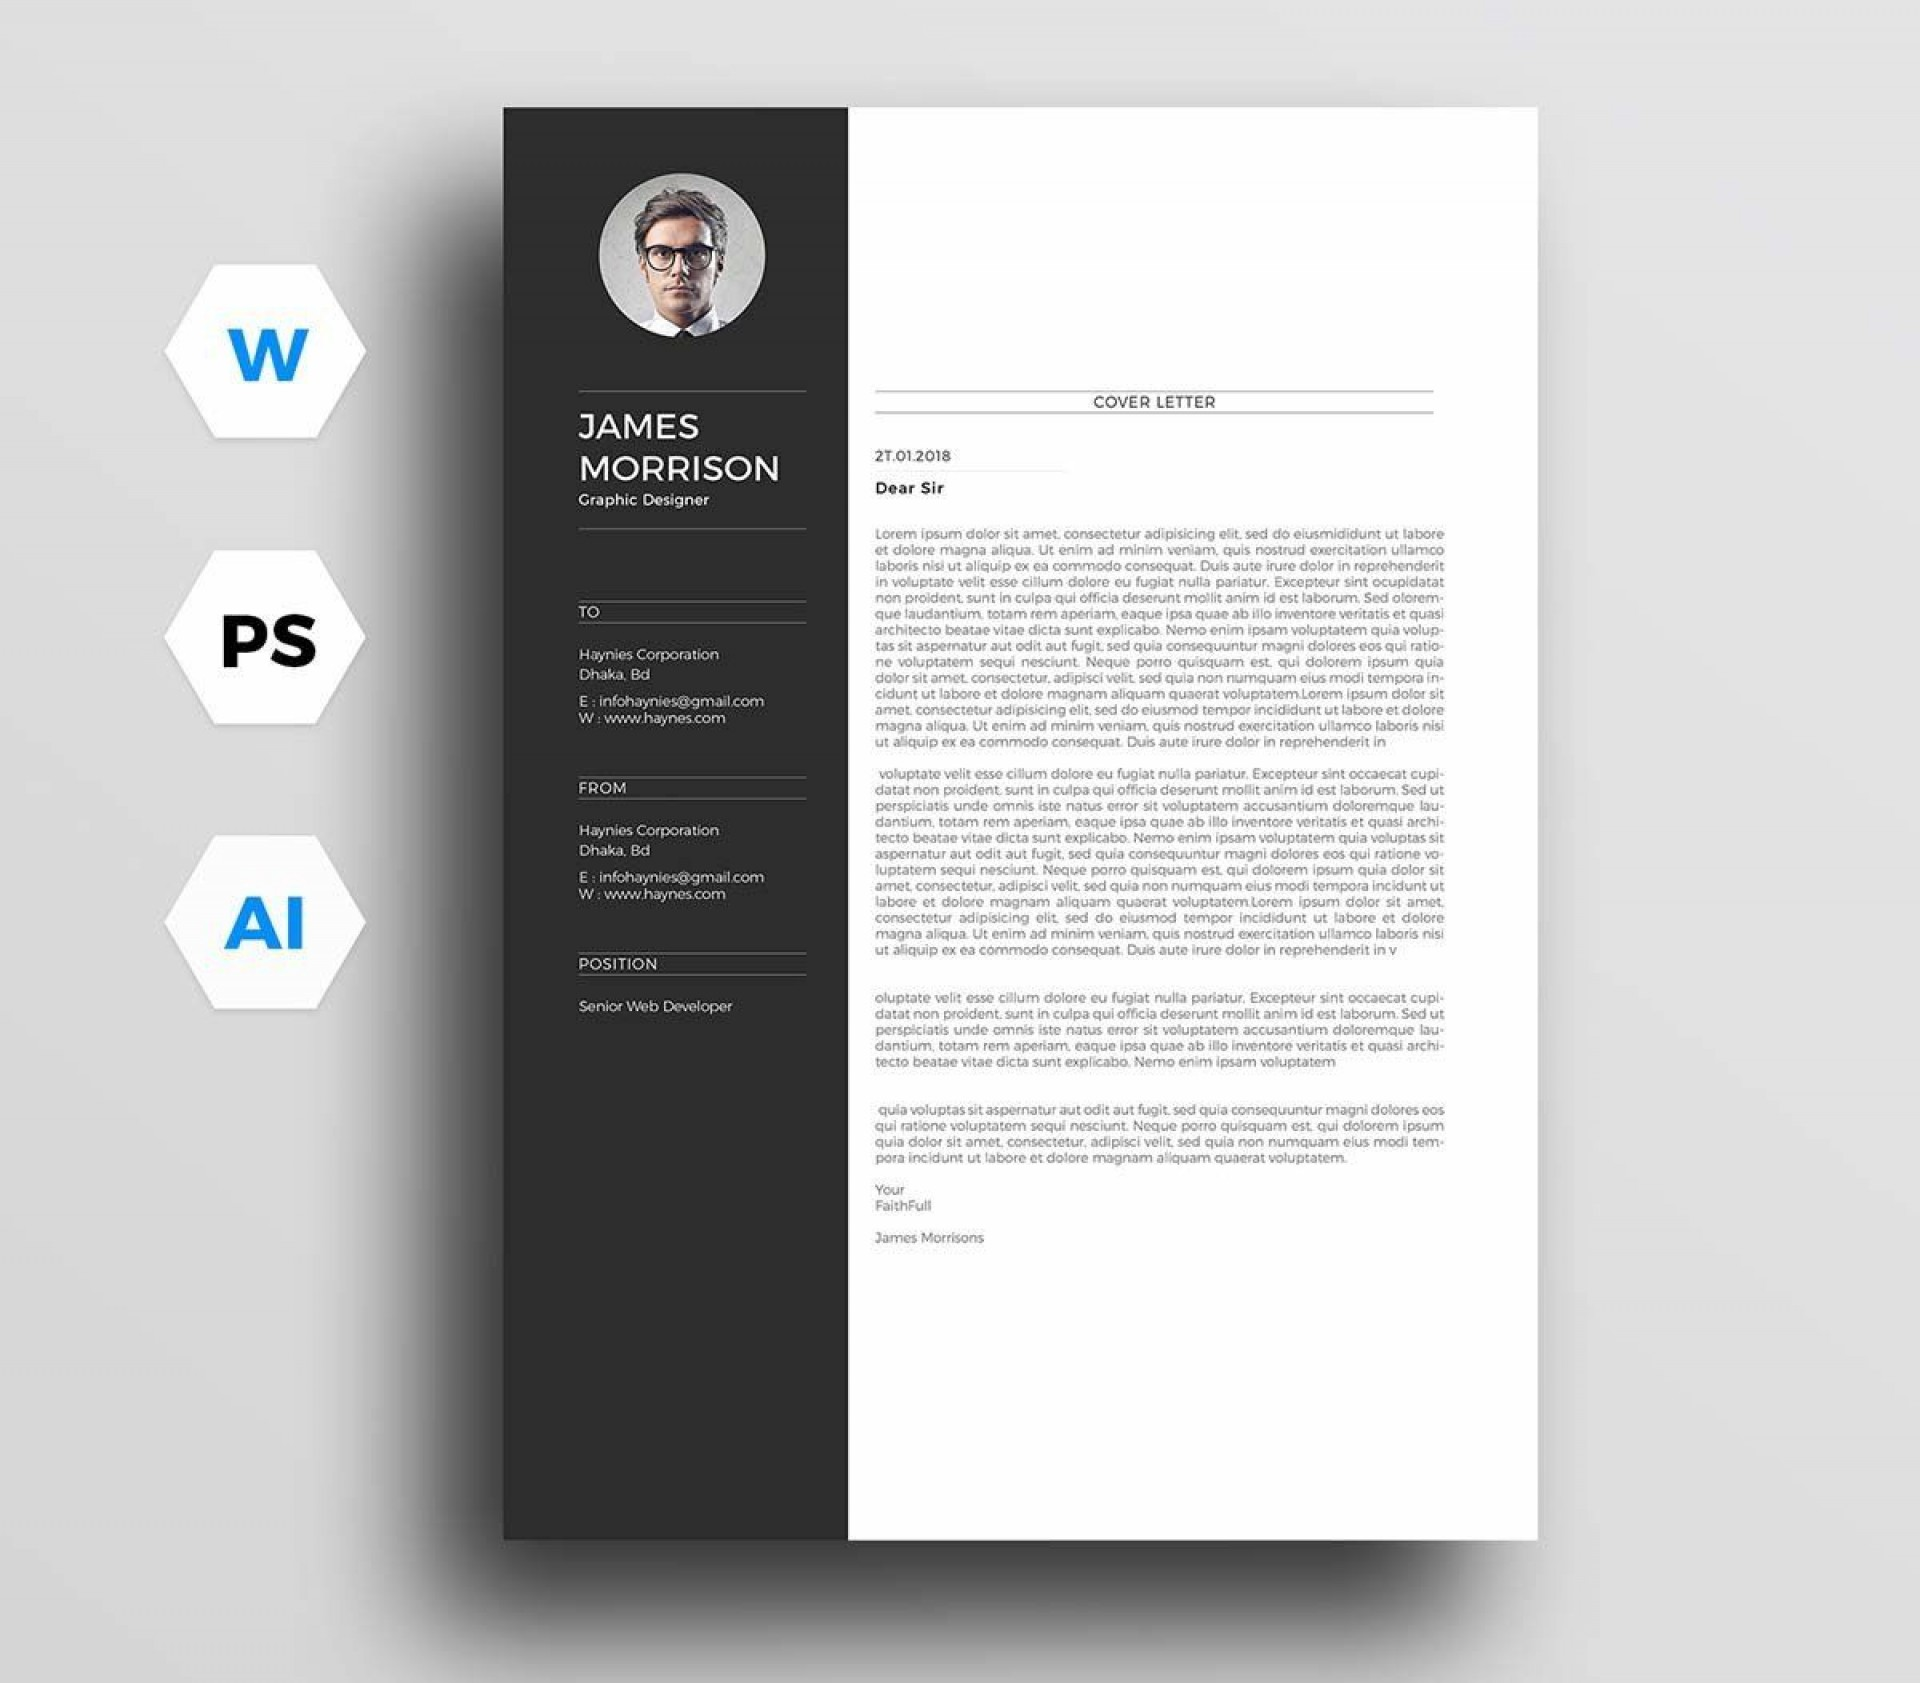 004 Awesome Resume Cover Letter Template Free Highest Clarity  Simple Online Microsoft1920